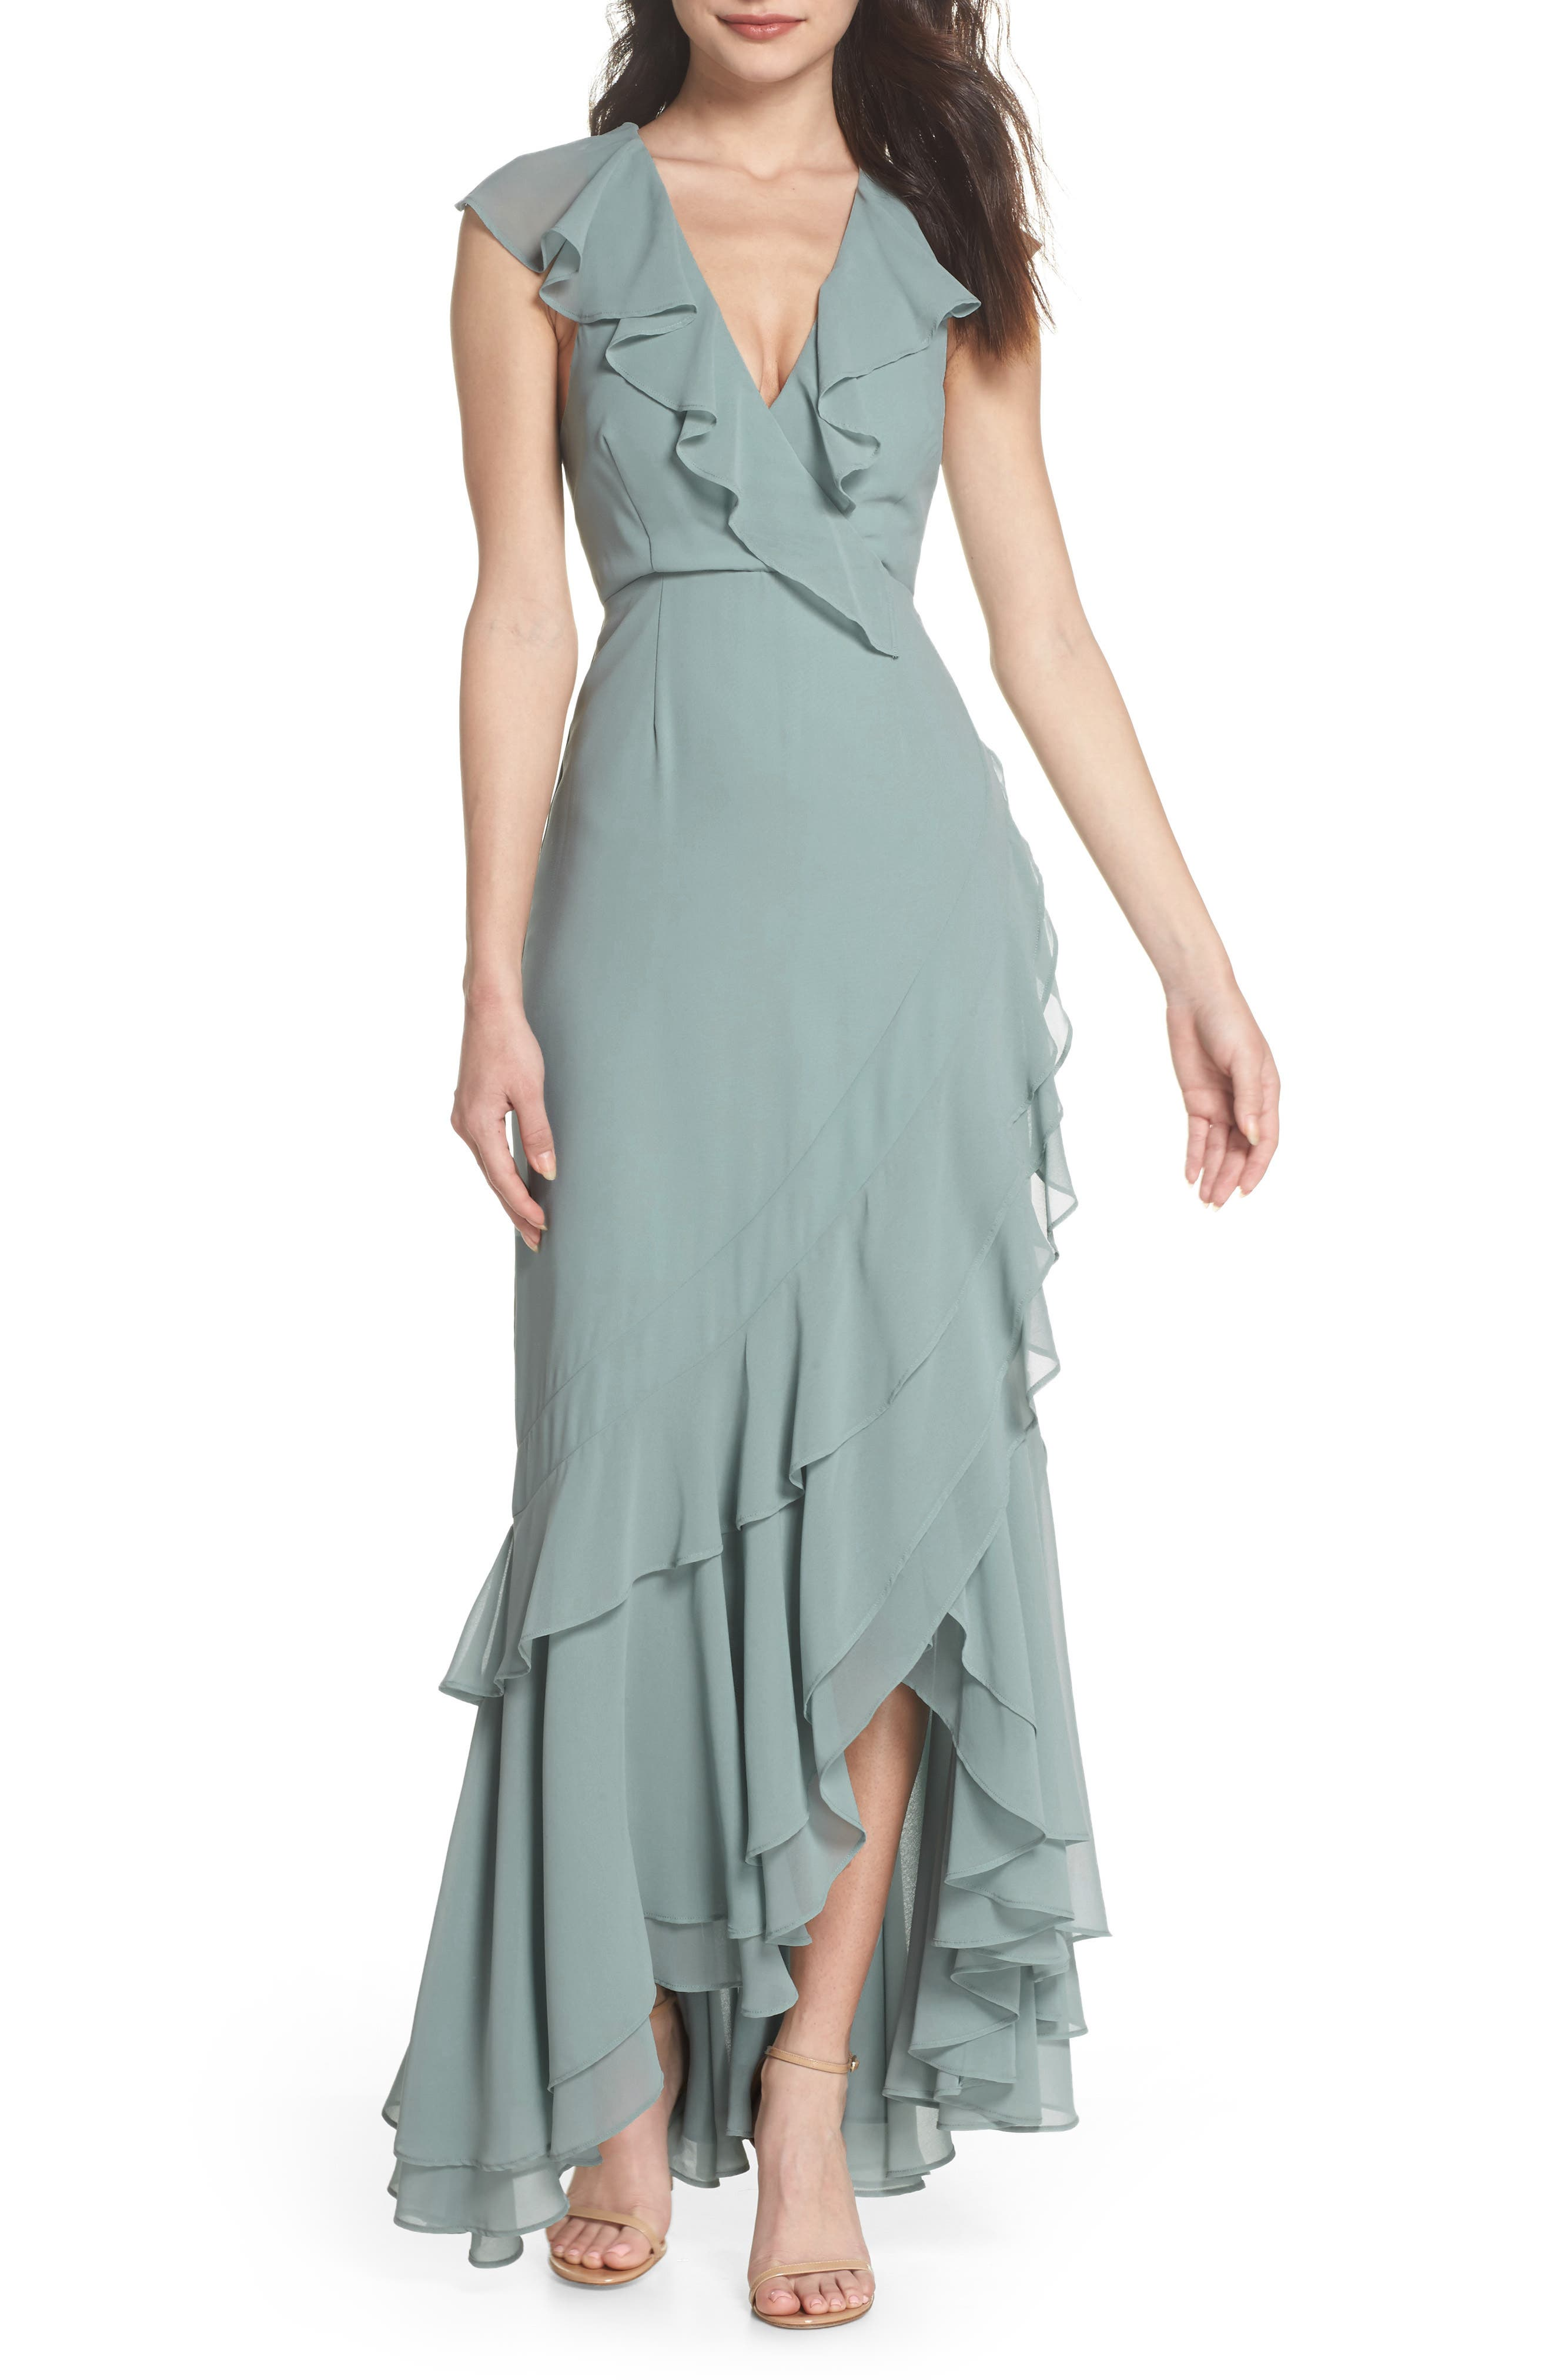 C/MEO Be About You Ruffle Gown,                             Main thumbnail 1, color,                             330